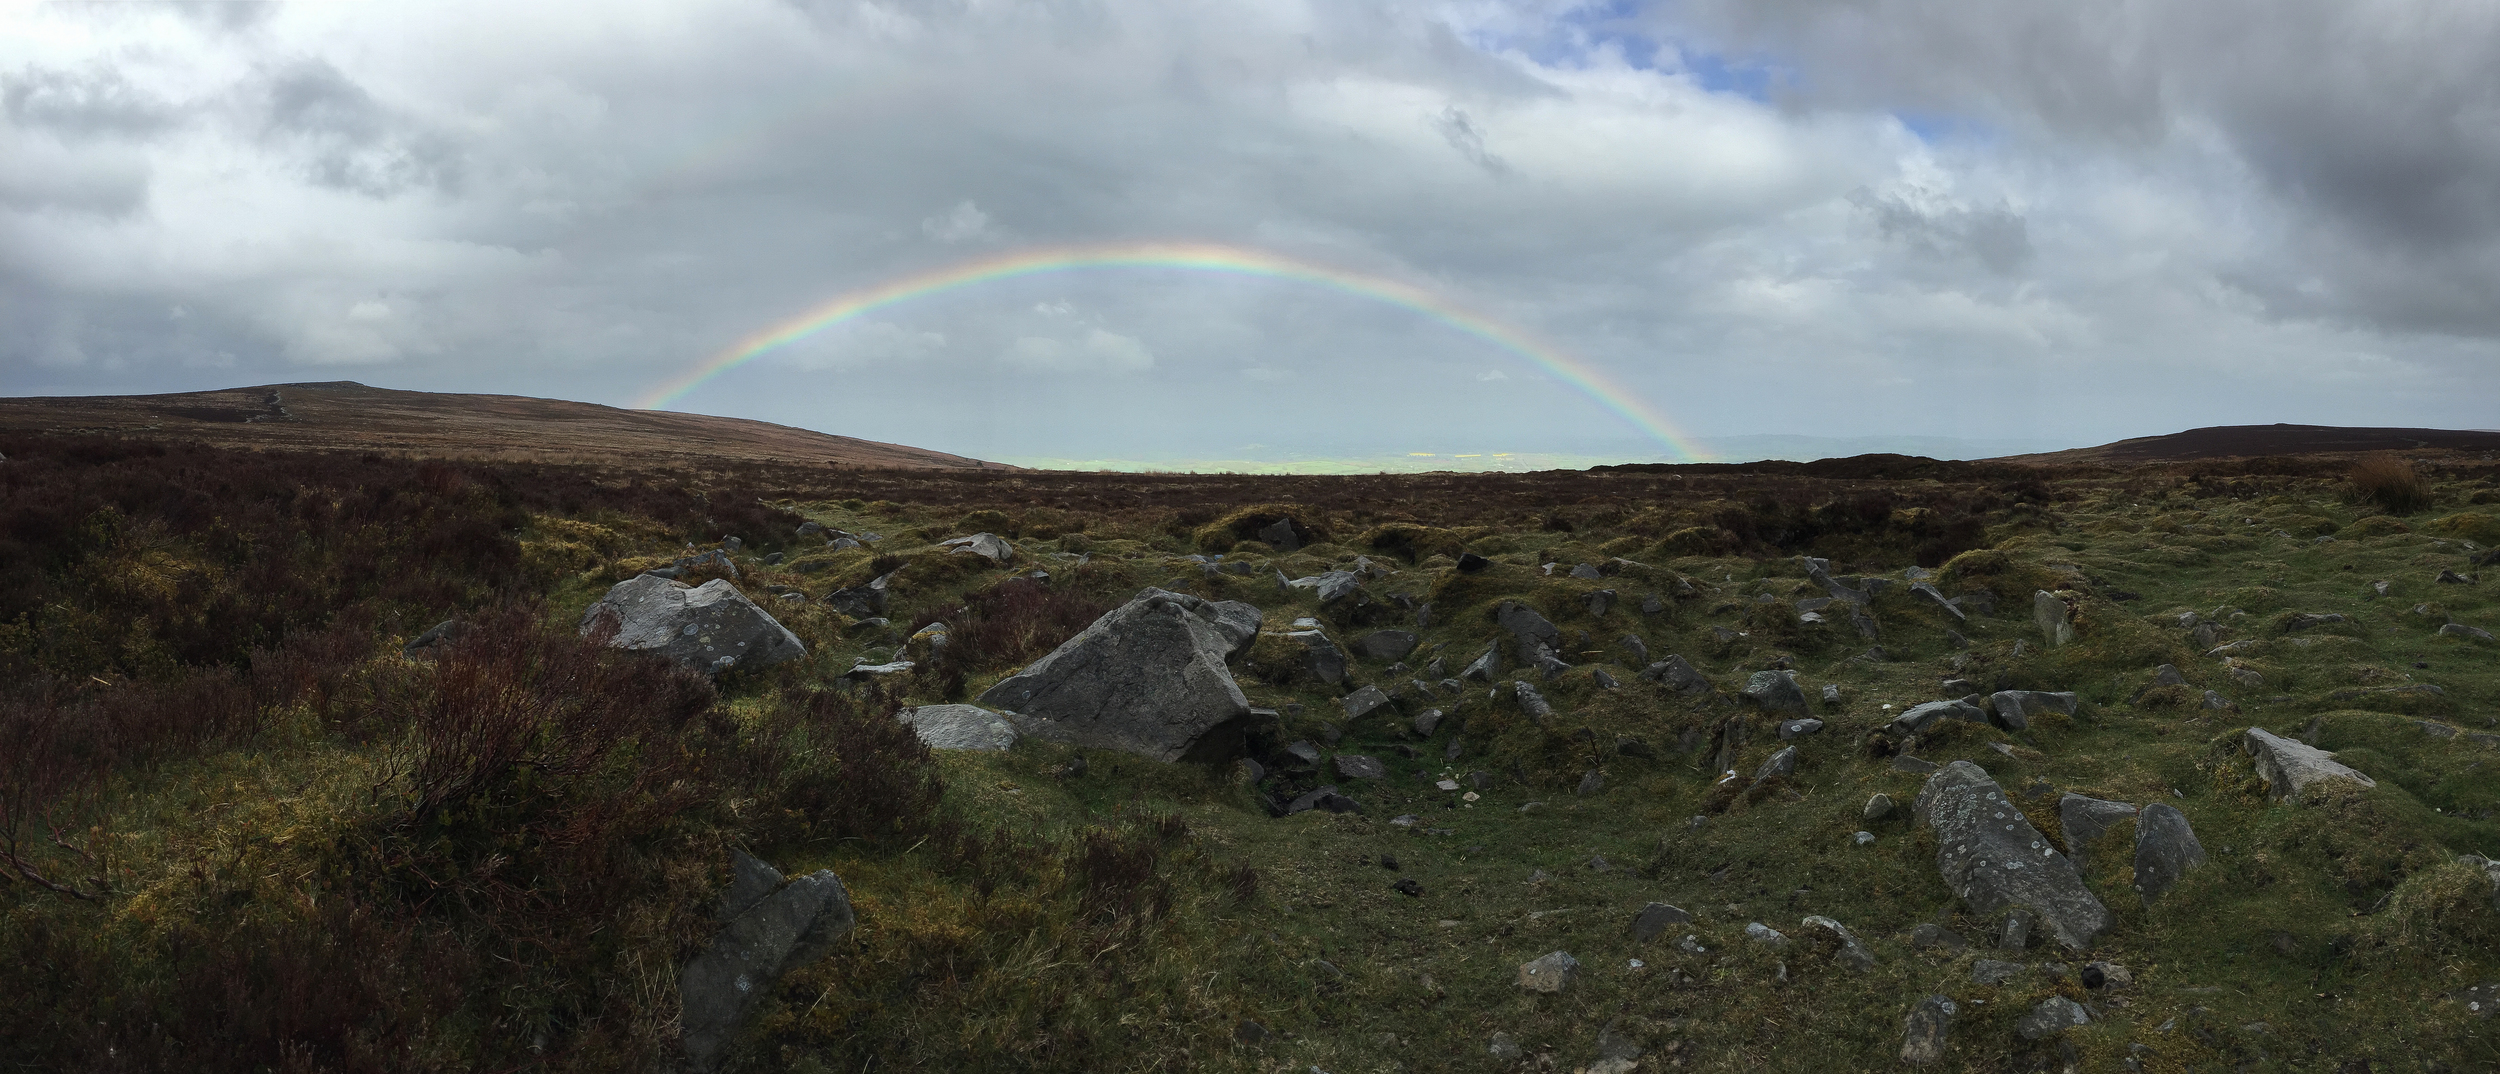 Blaenavon Rainbow iPhone 6 3rd May.jpg